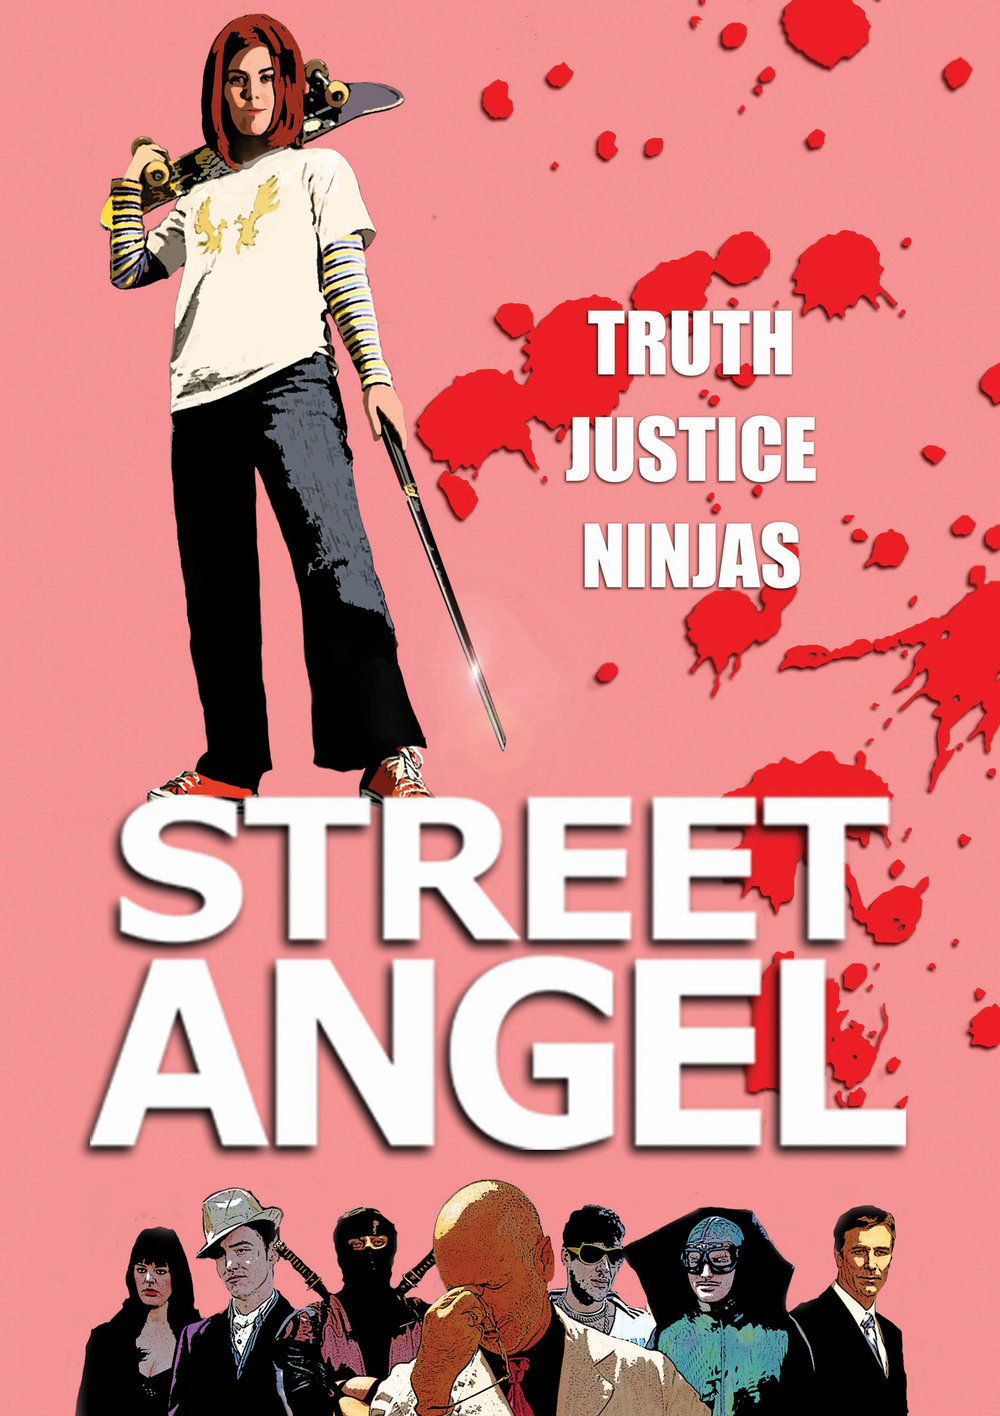 STREET ANGEL  2008, 16 mins Role: Writer / Director